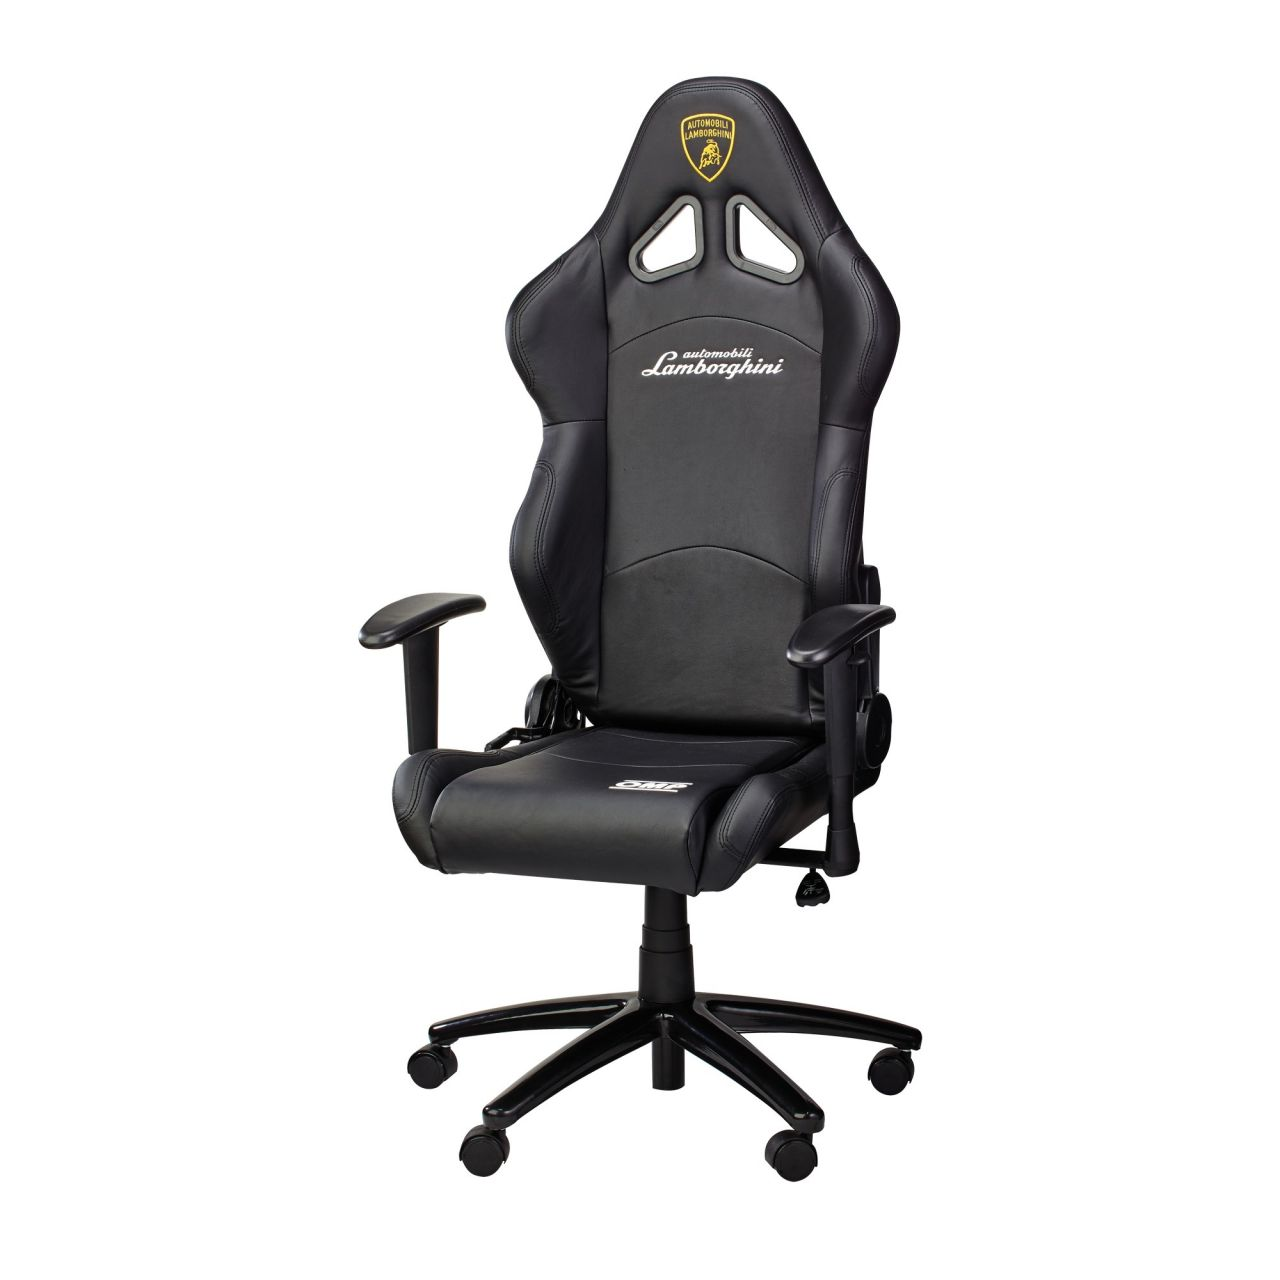 Merveilleux OMP Lamborghini Racing Office Chair